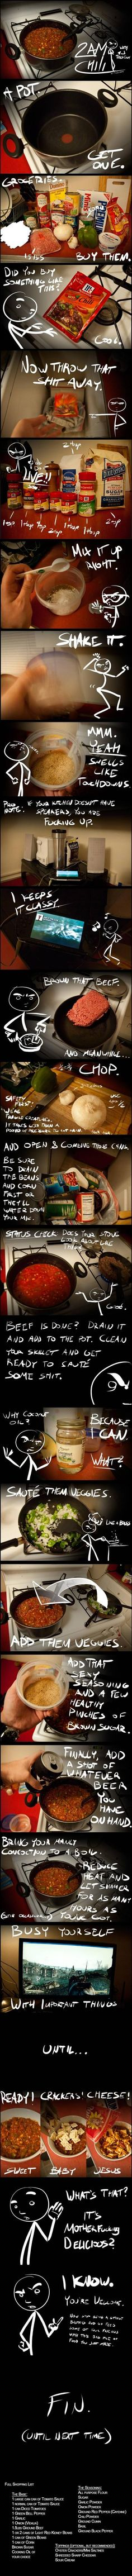 I'd cook more if I had these instructions